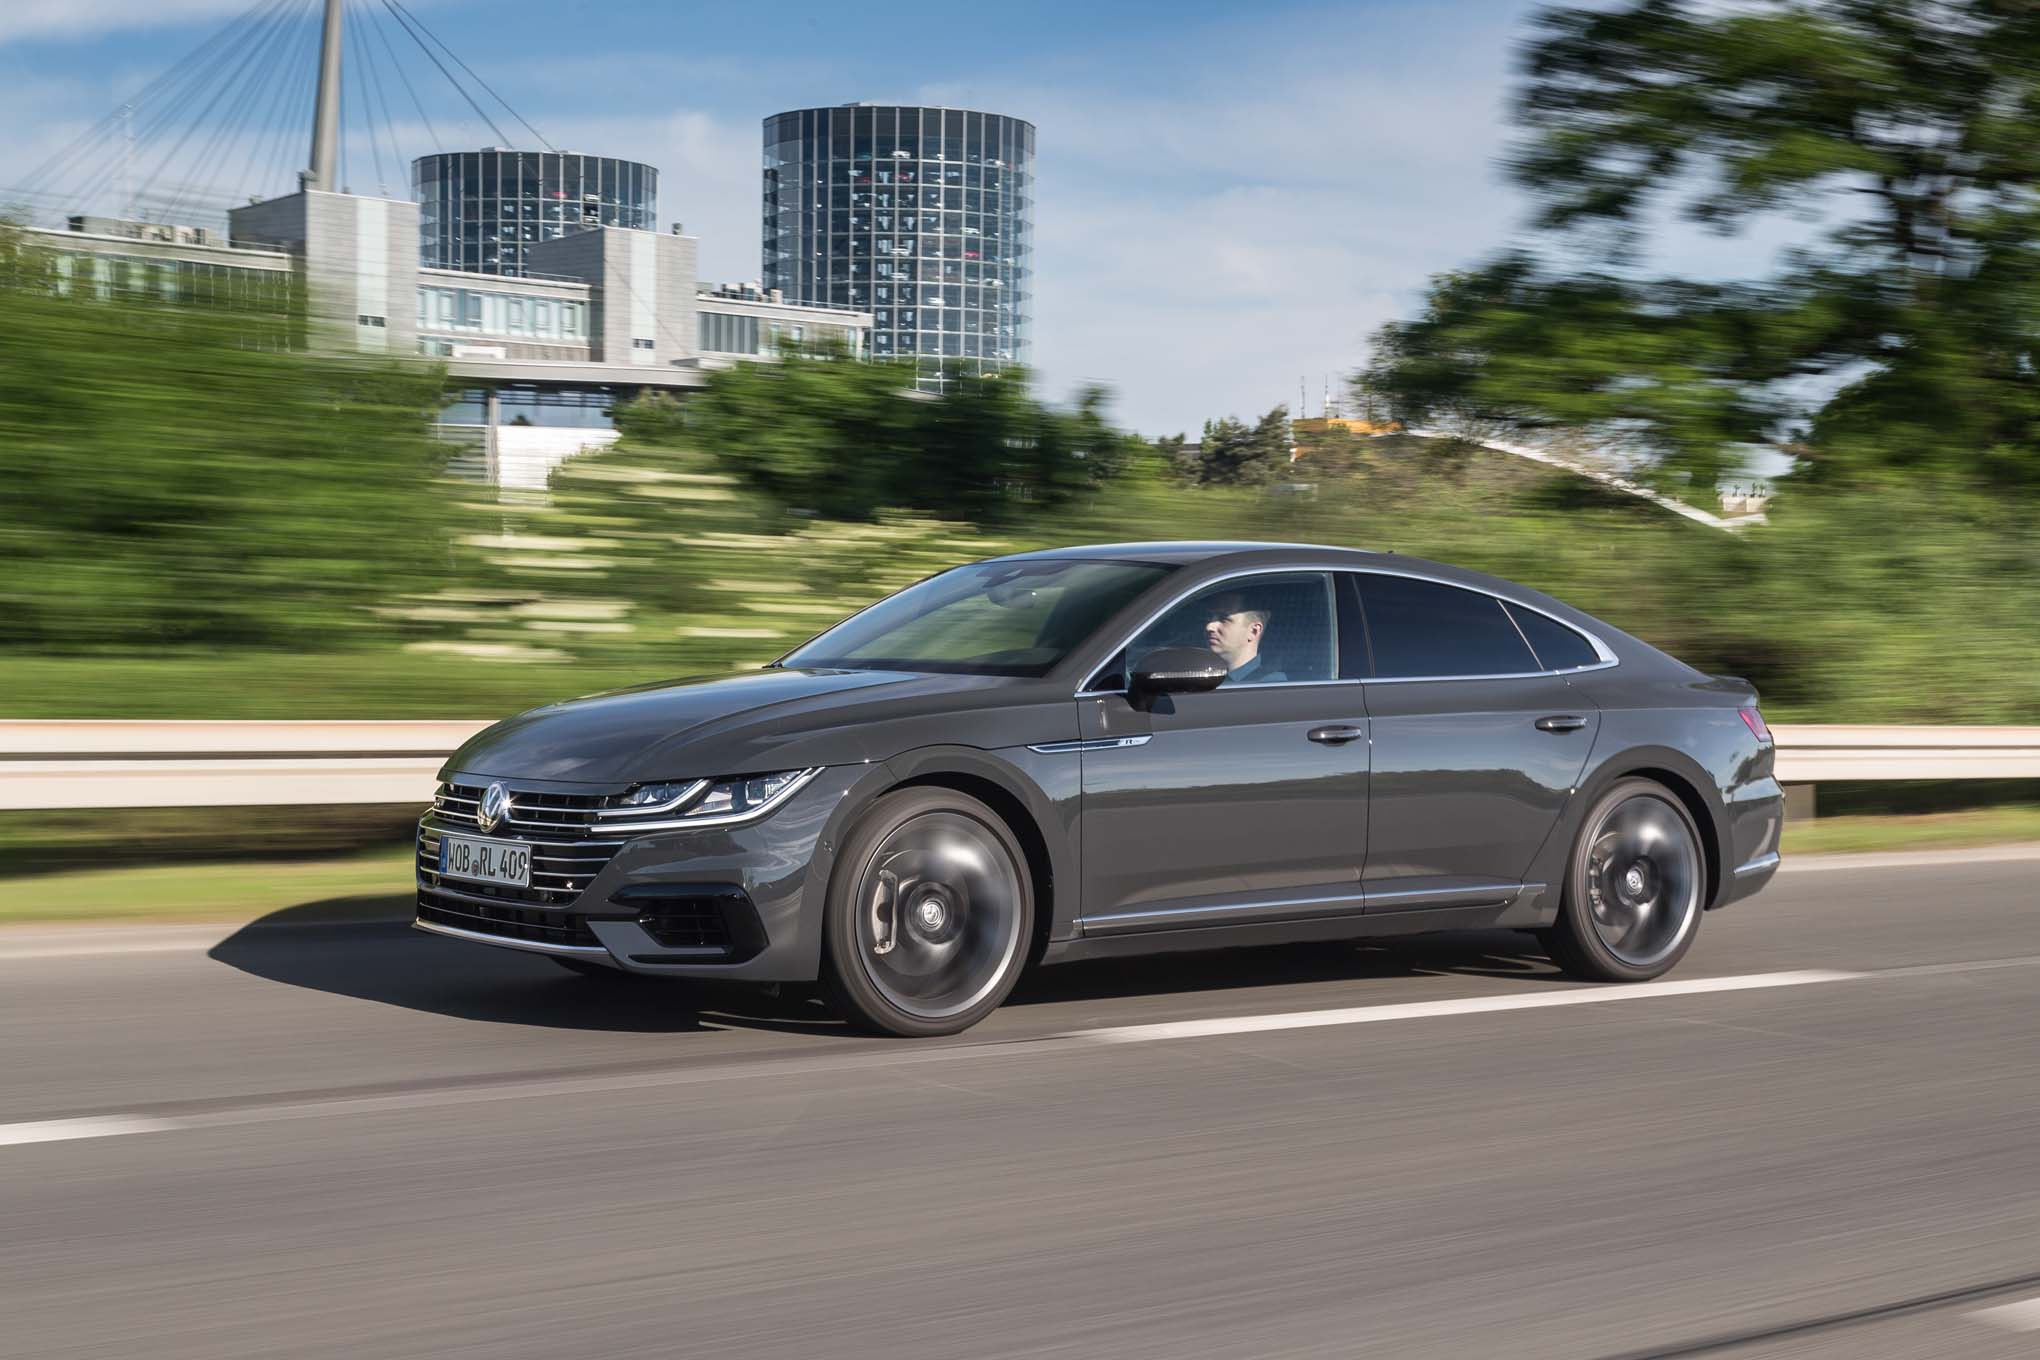 2019 volkswagen arteon first drive review automobile. Black Bedroom Furniture Sets. Home Design Ideas